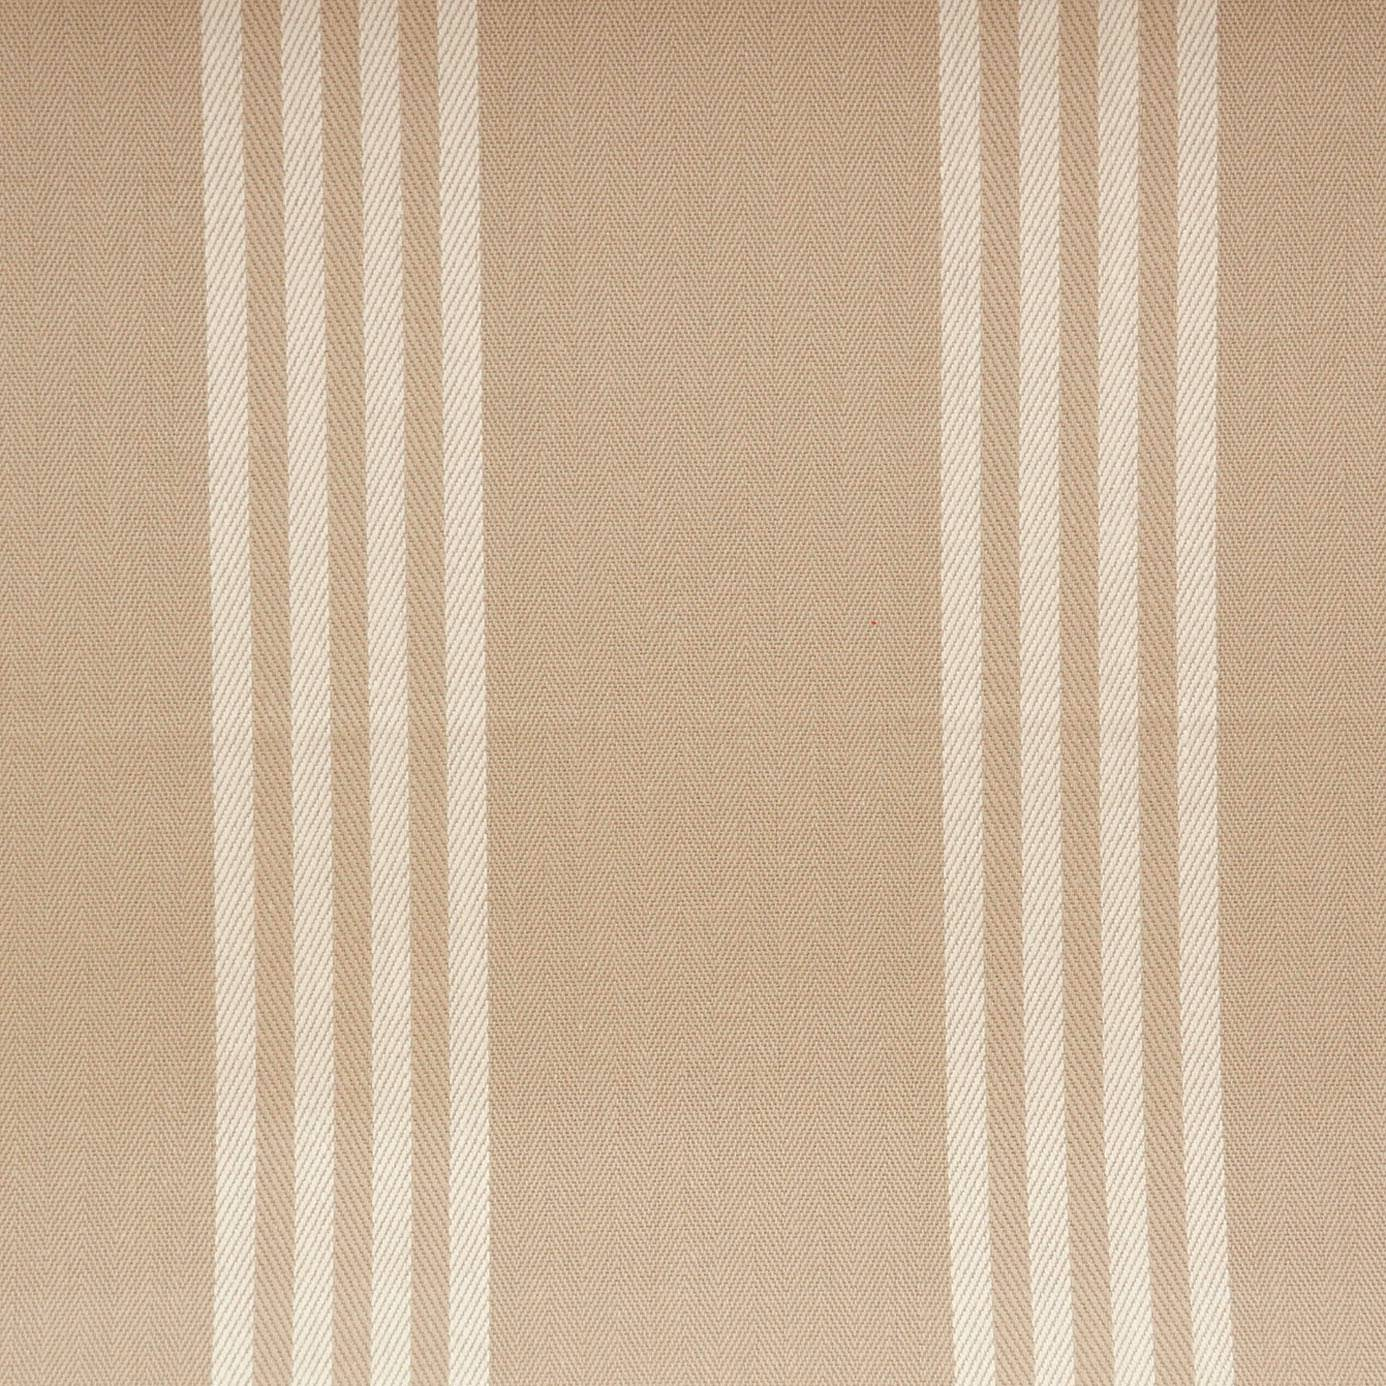 Marlow fabric natural f0422 03 clarke clarke for Ticking fabric